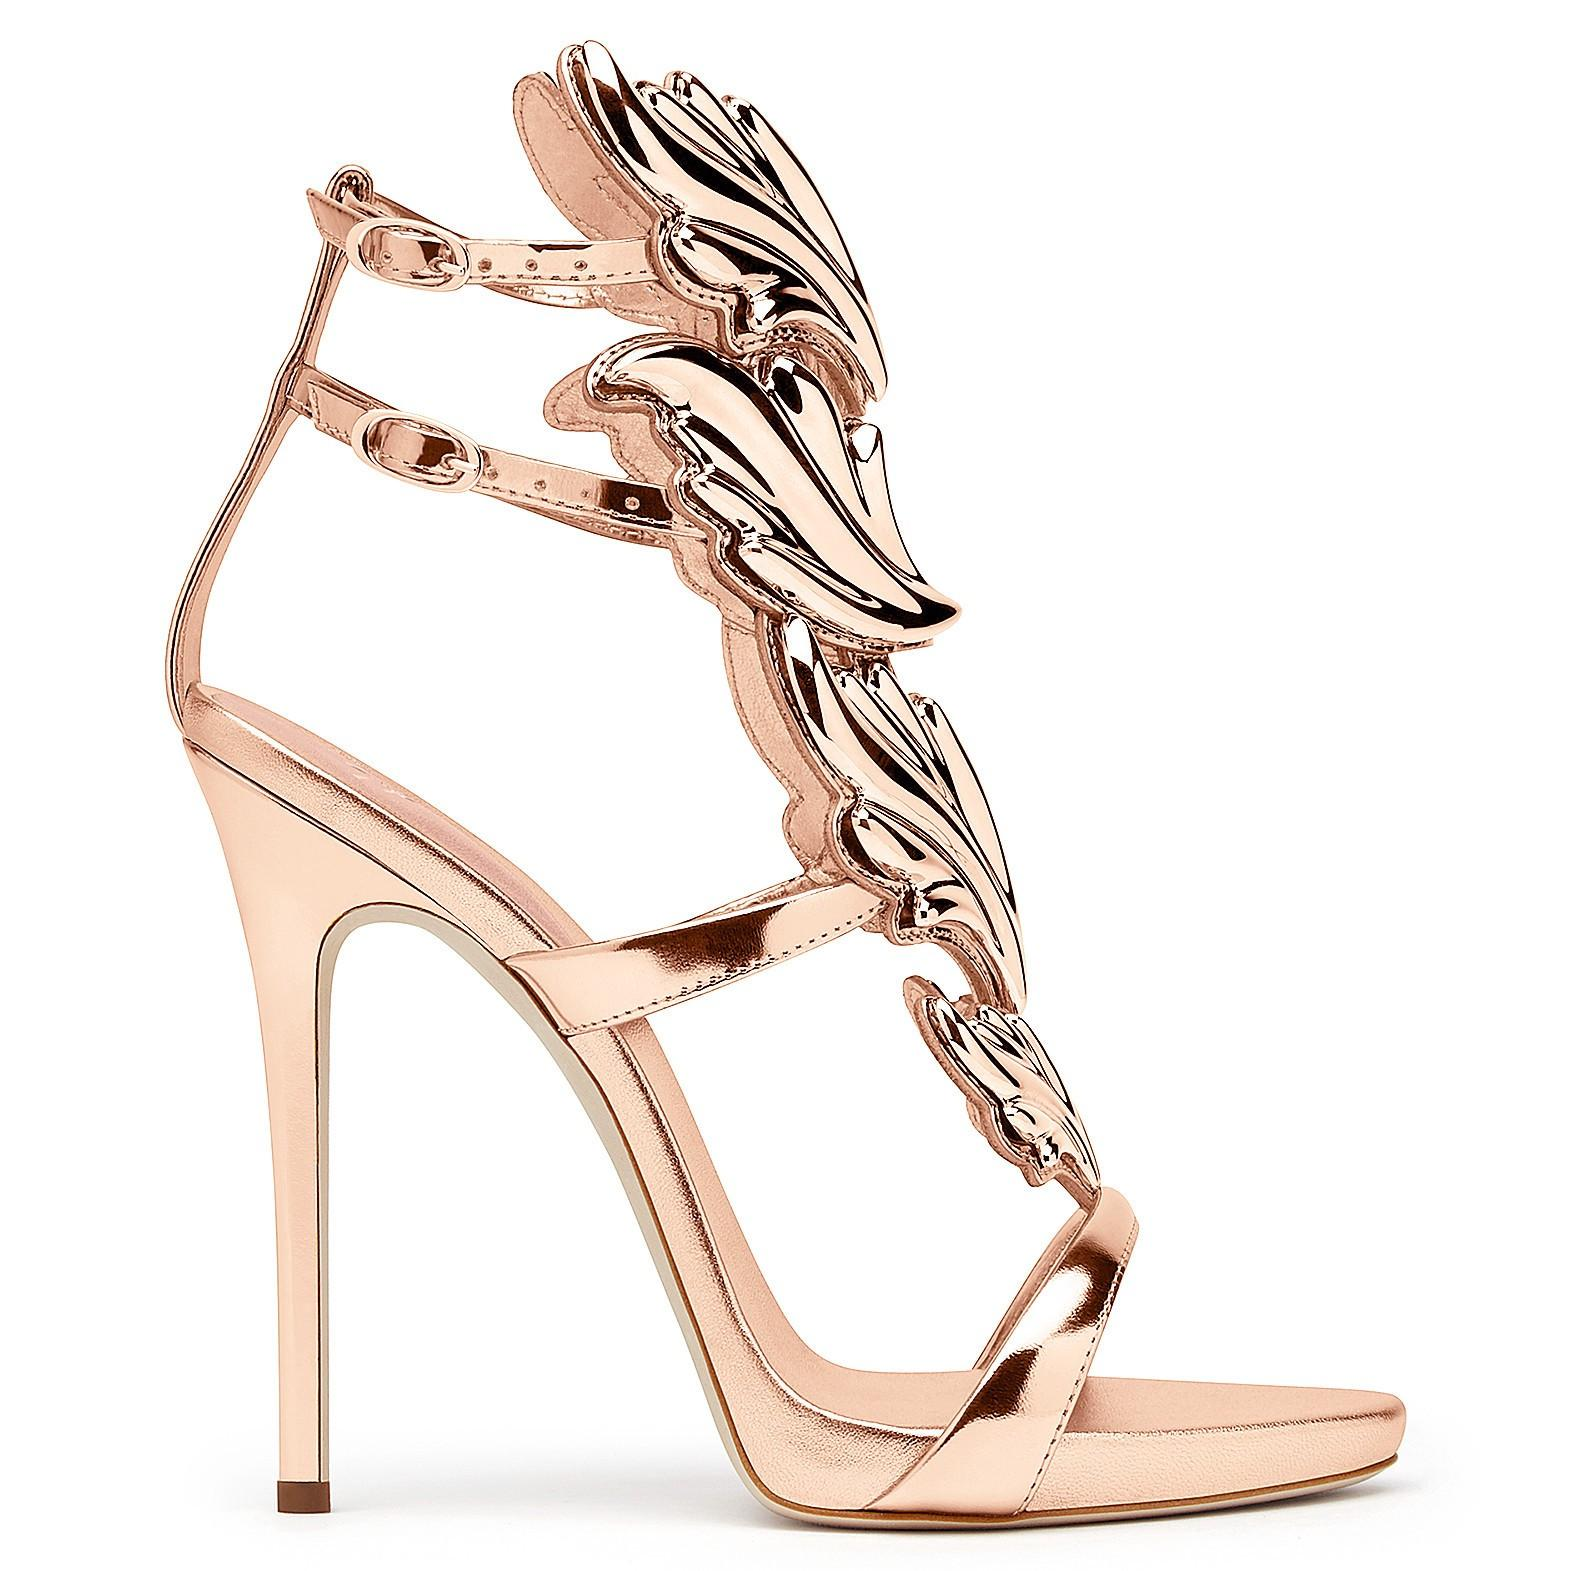 3a4fc6f392be5 Giuseppe Zanotti Coline Wings Suede 110Mm Sandals In Rose Gold ...